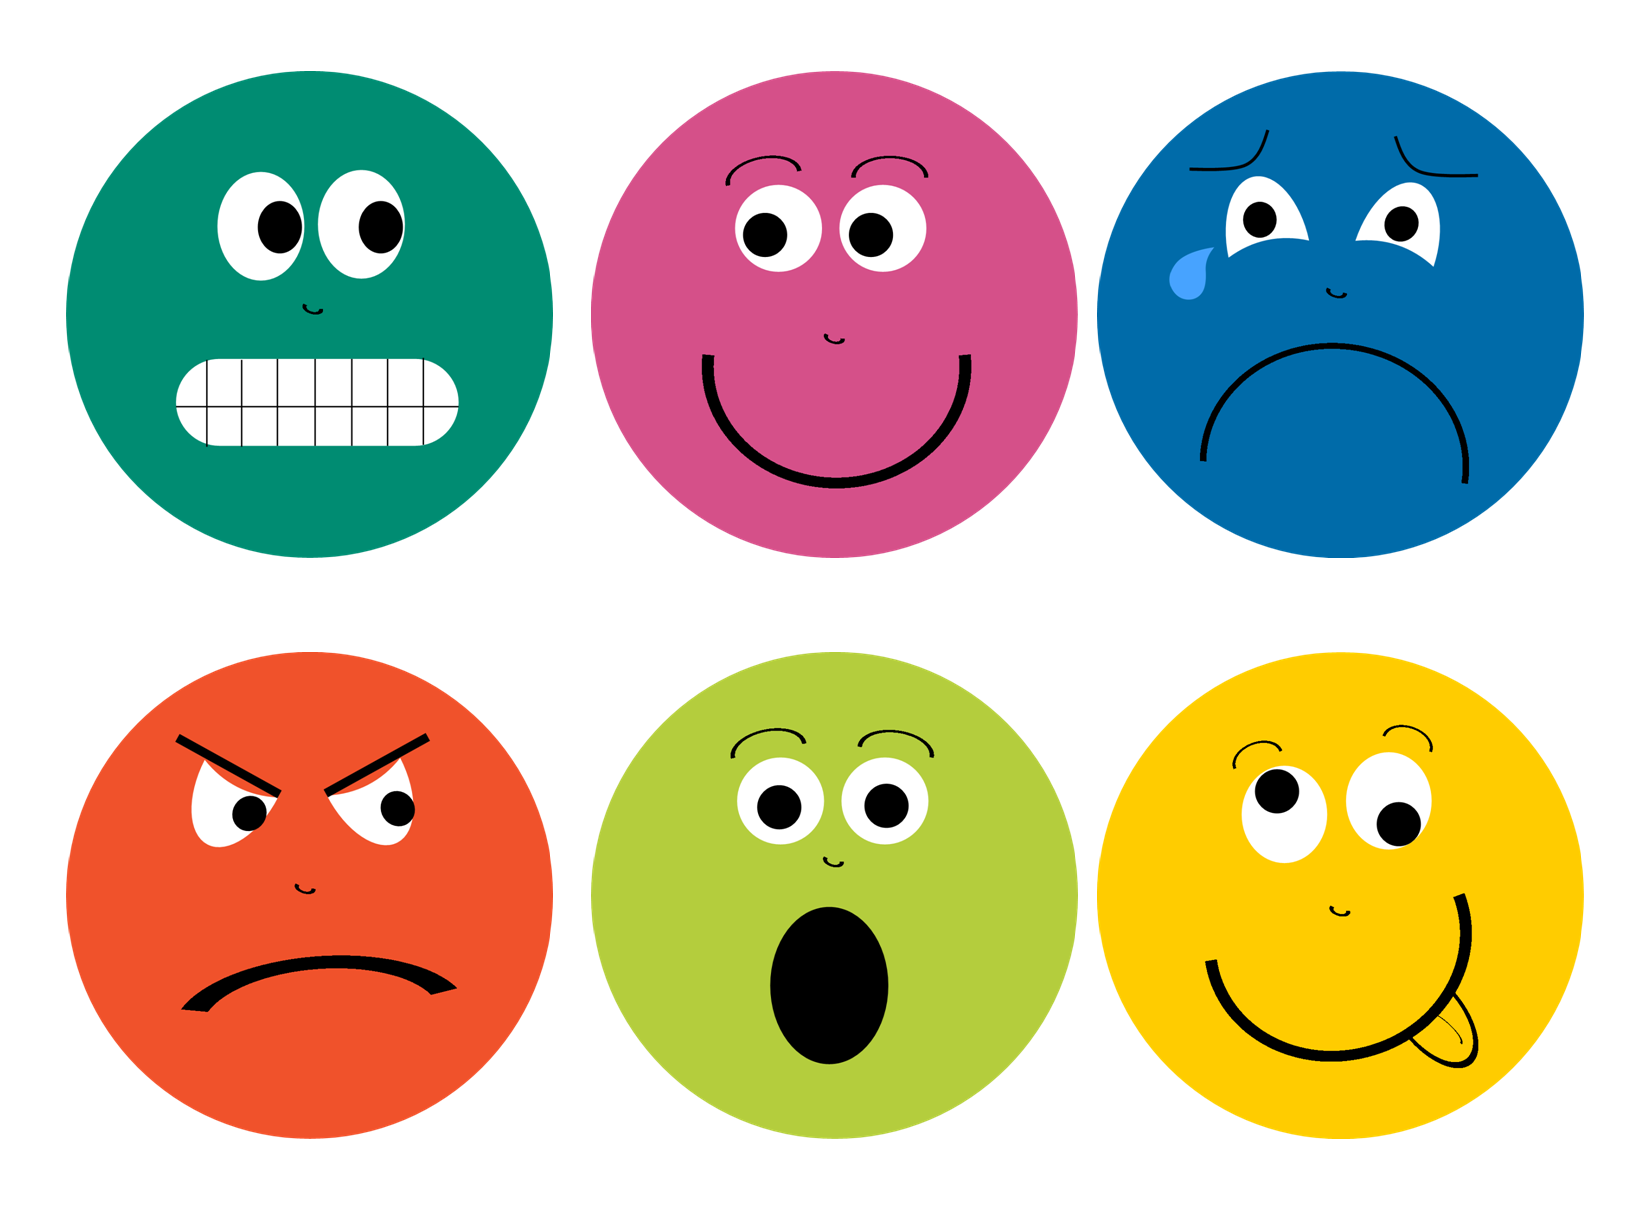 Emotions clipart basic emotion. Feelings faces printable library